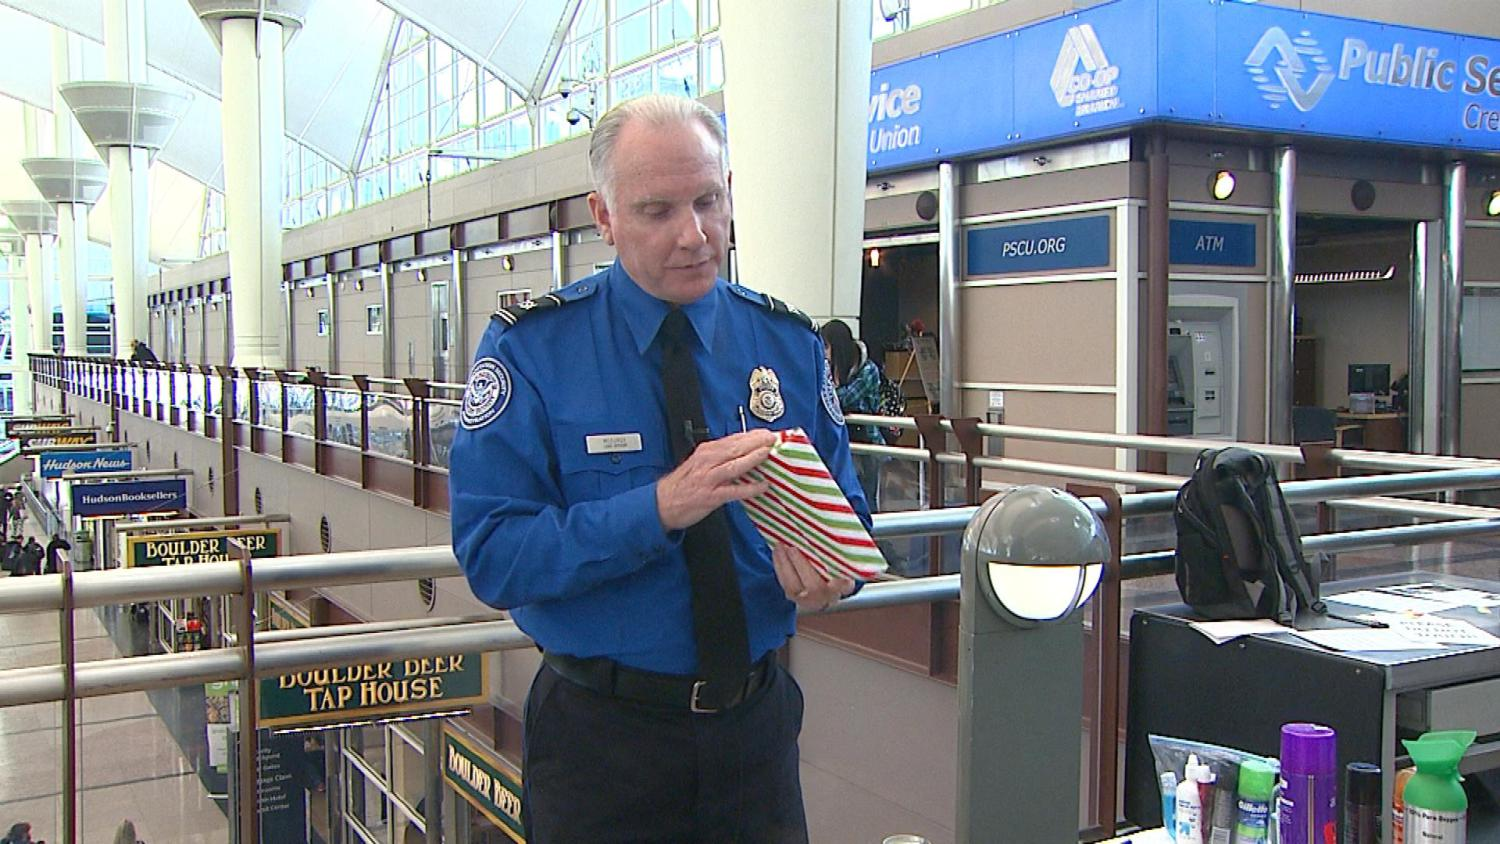 TSA May Get Grinchy About Wrapped Gifts